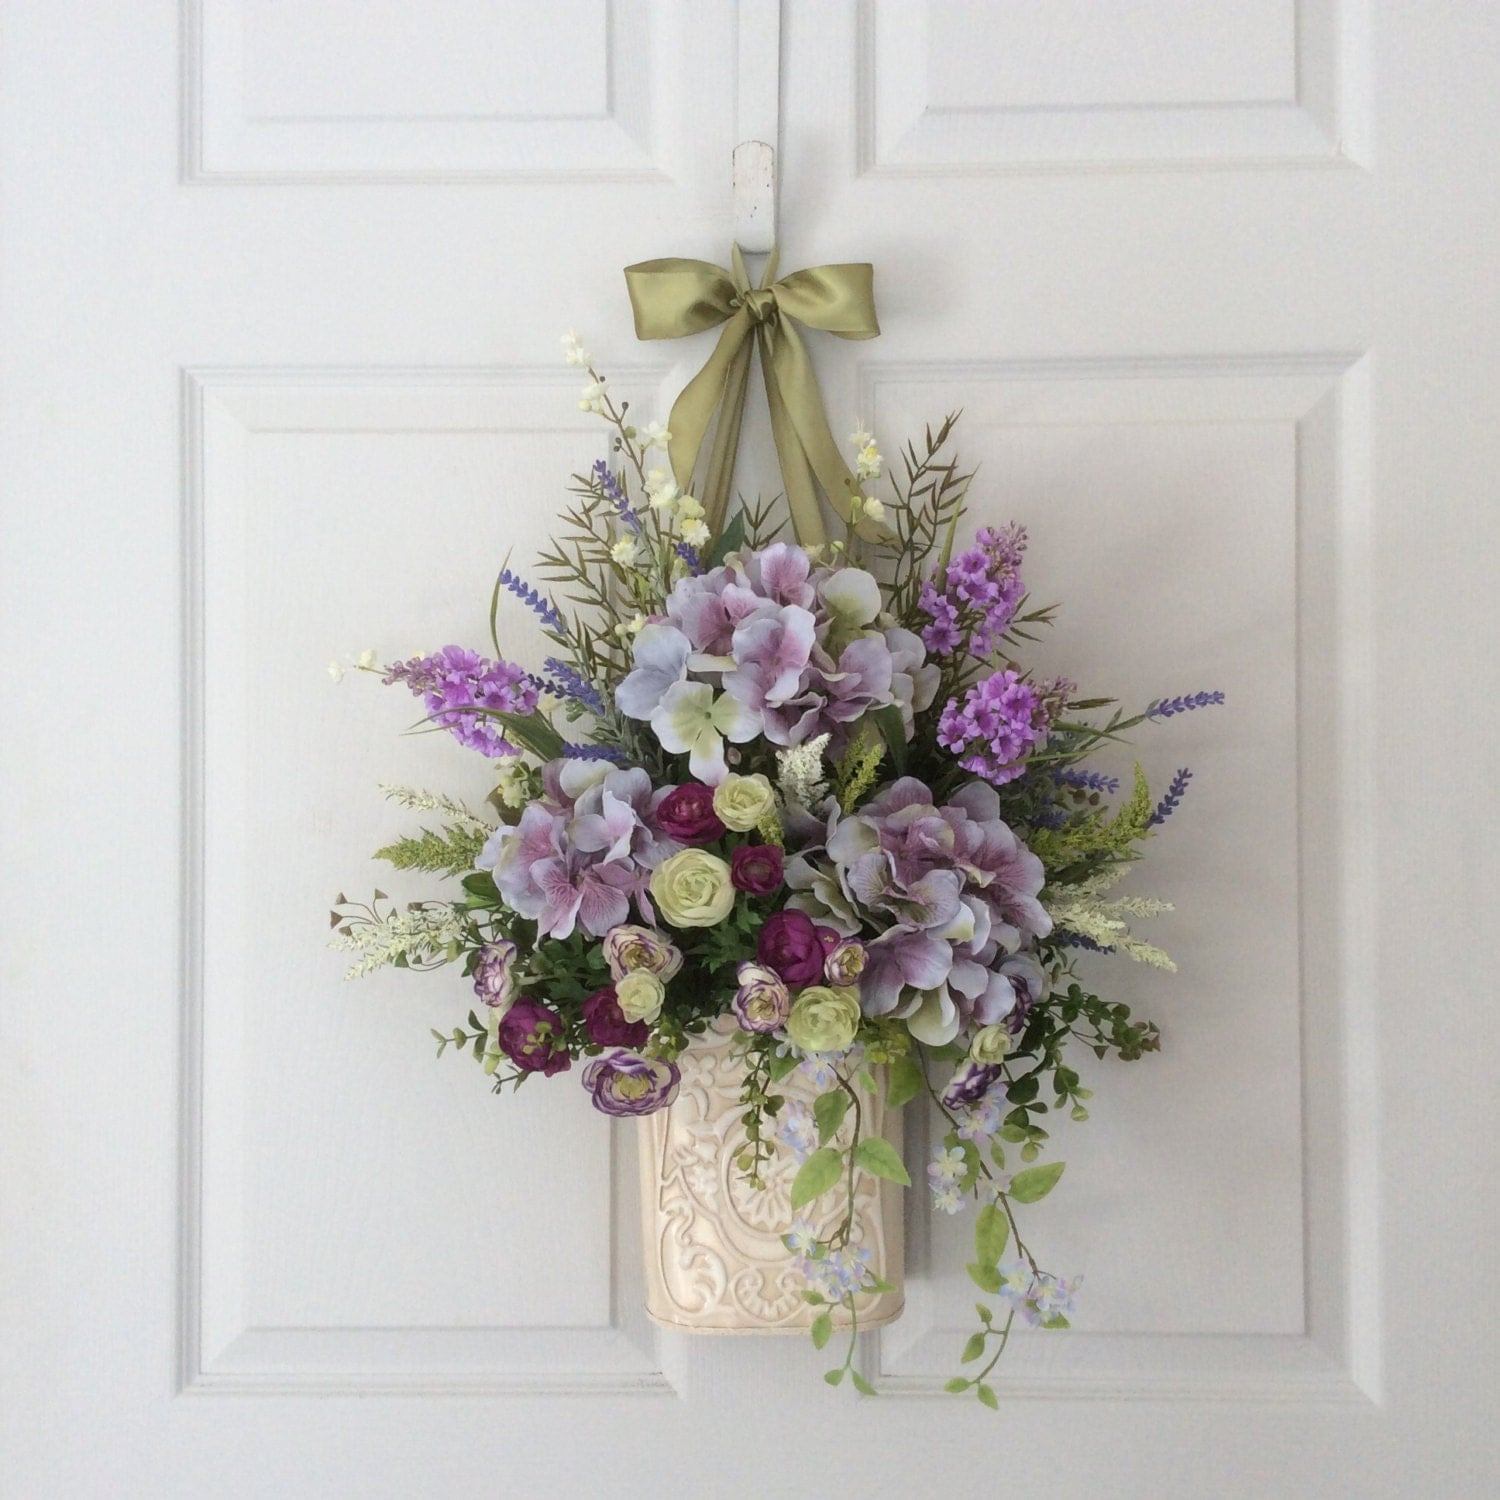 Front Door Baskets: Floral Door Basket-Hydrangea Wreath-Spring Floral